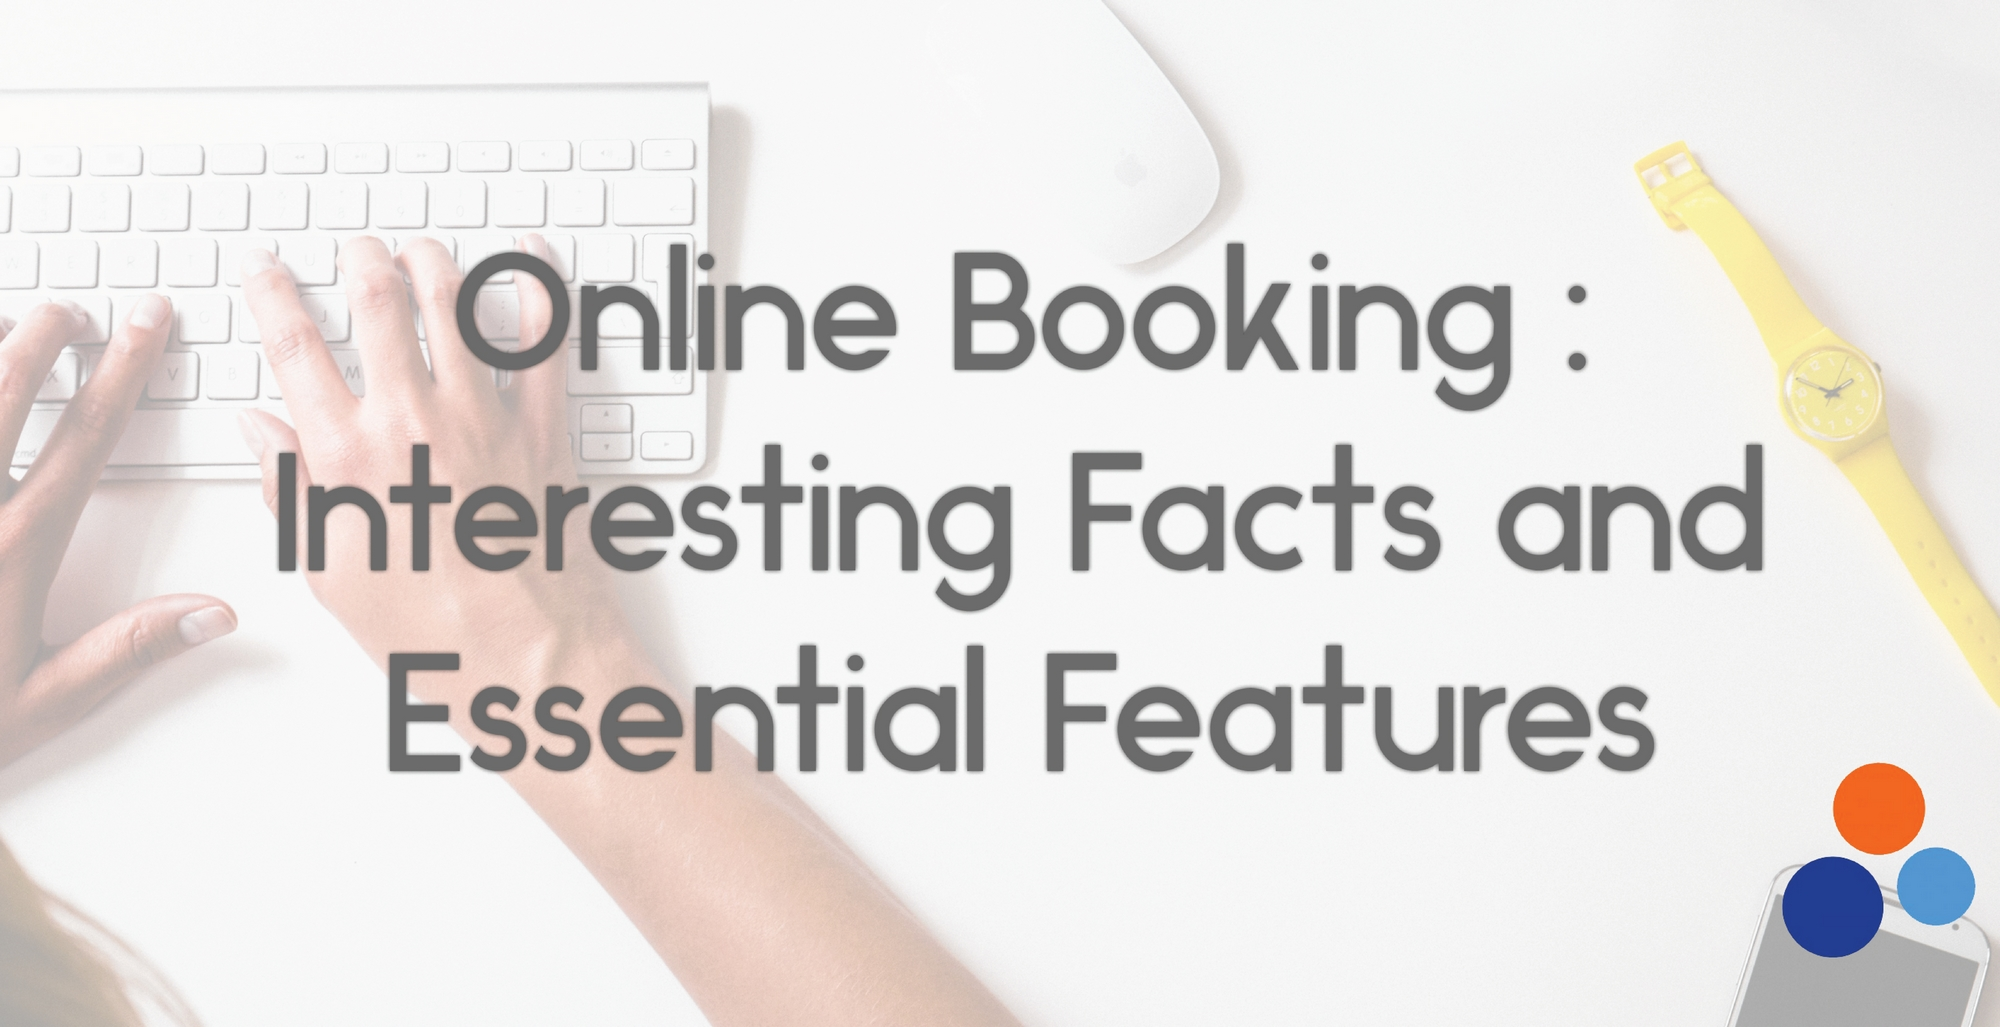 Online Booking : Interesting Facts and Essential Features